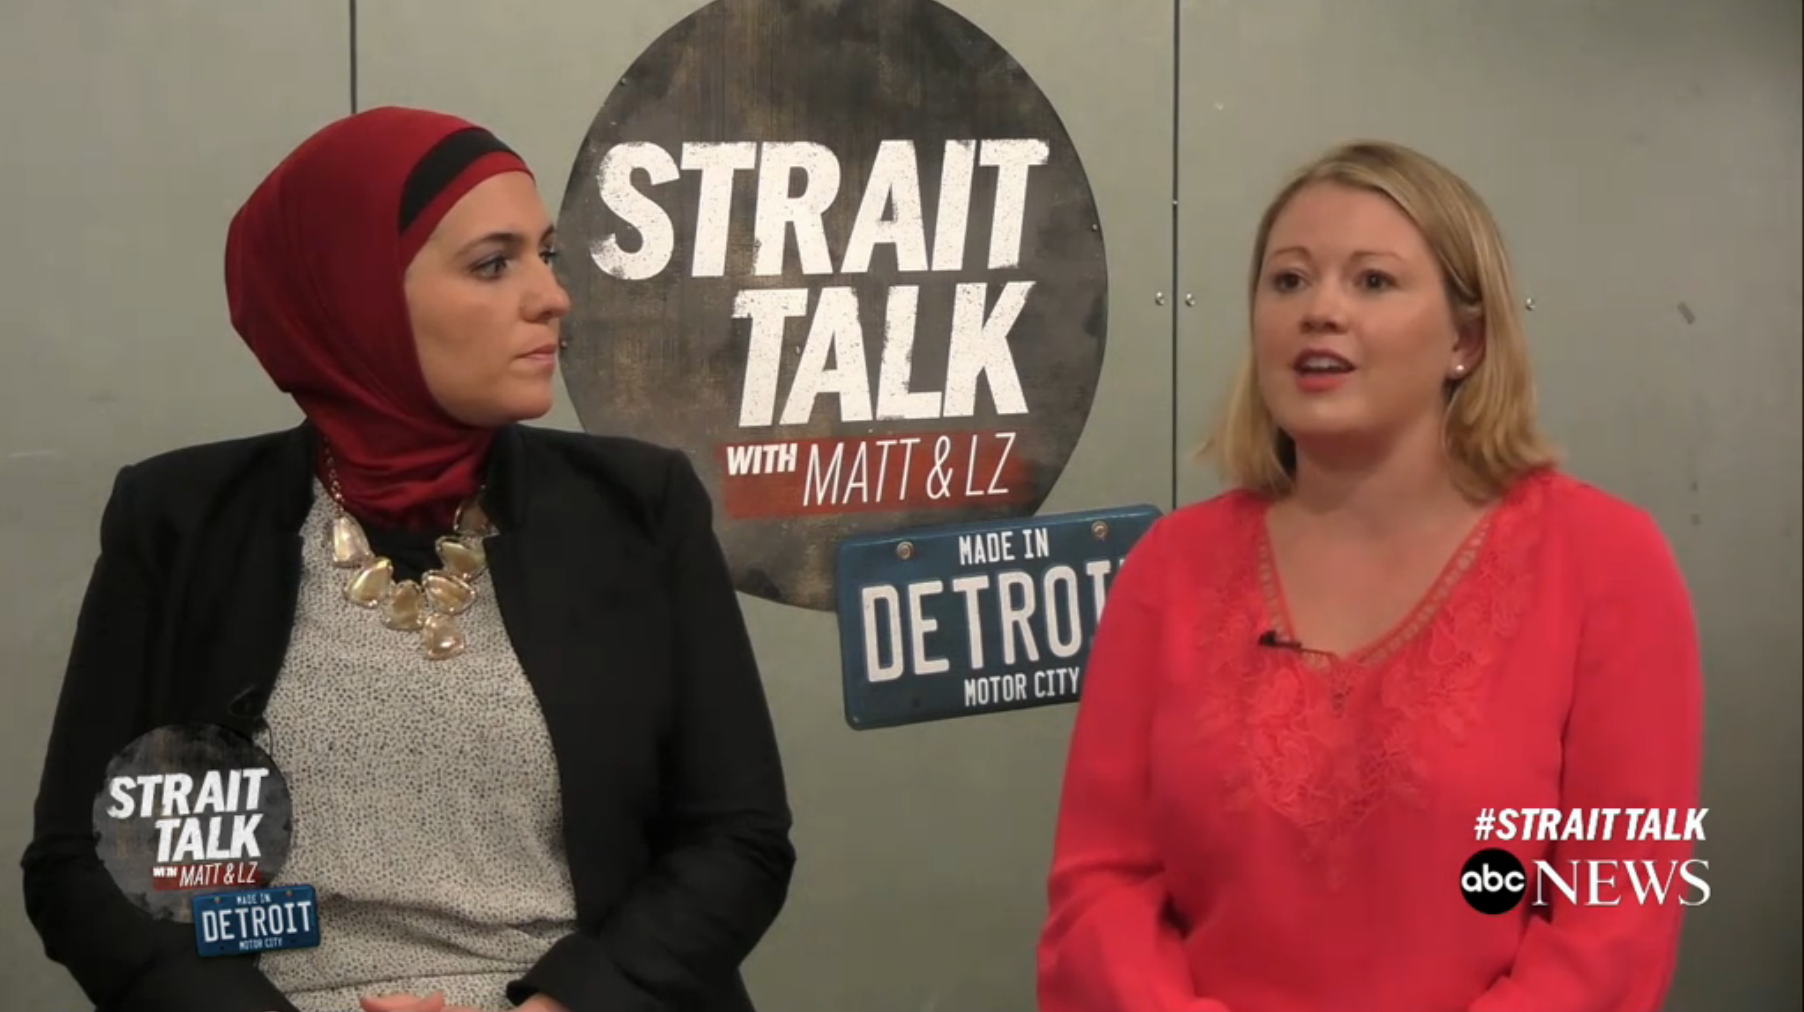 Strait Talk Detroit: What the Obama Administration Could Have Done Better for Religious Groups